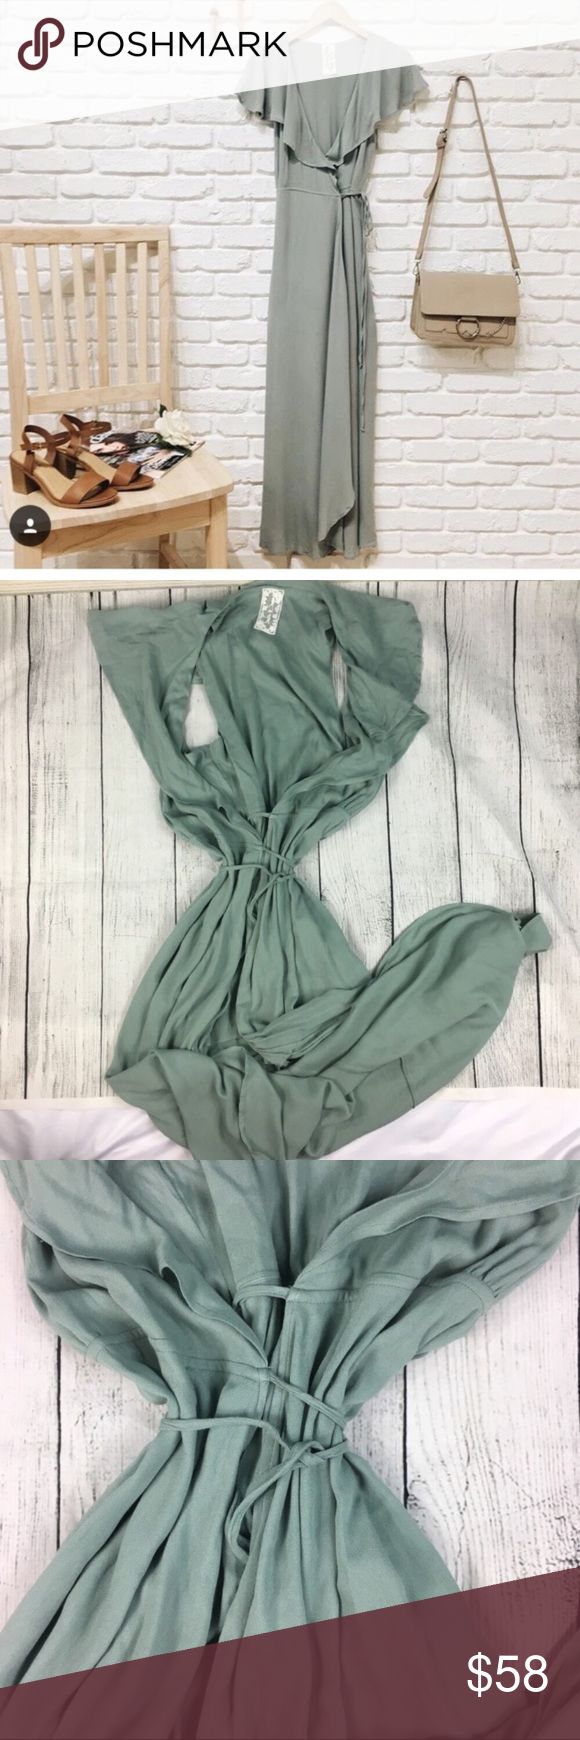 """LAST 🆕Gorgeous cream green wrap maxi dress 👗💚 DR:08800 A must have wrap dress. It is a light creamy green. Super stylish and comfy. Has a gorgeous ruffle v neck line. The perfect going out dress. MEASUREMENTS: length: about 54"""" laying on floor— Dorimas Closet Dresses Maxi"""